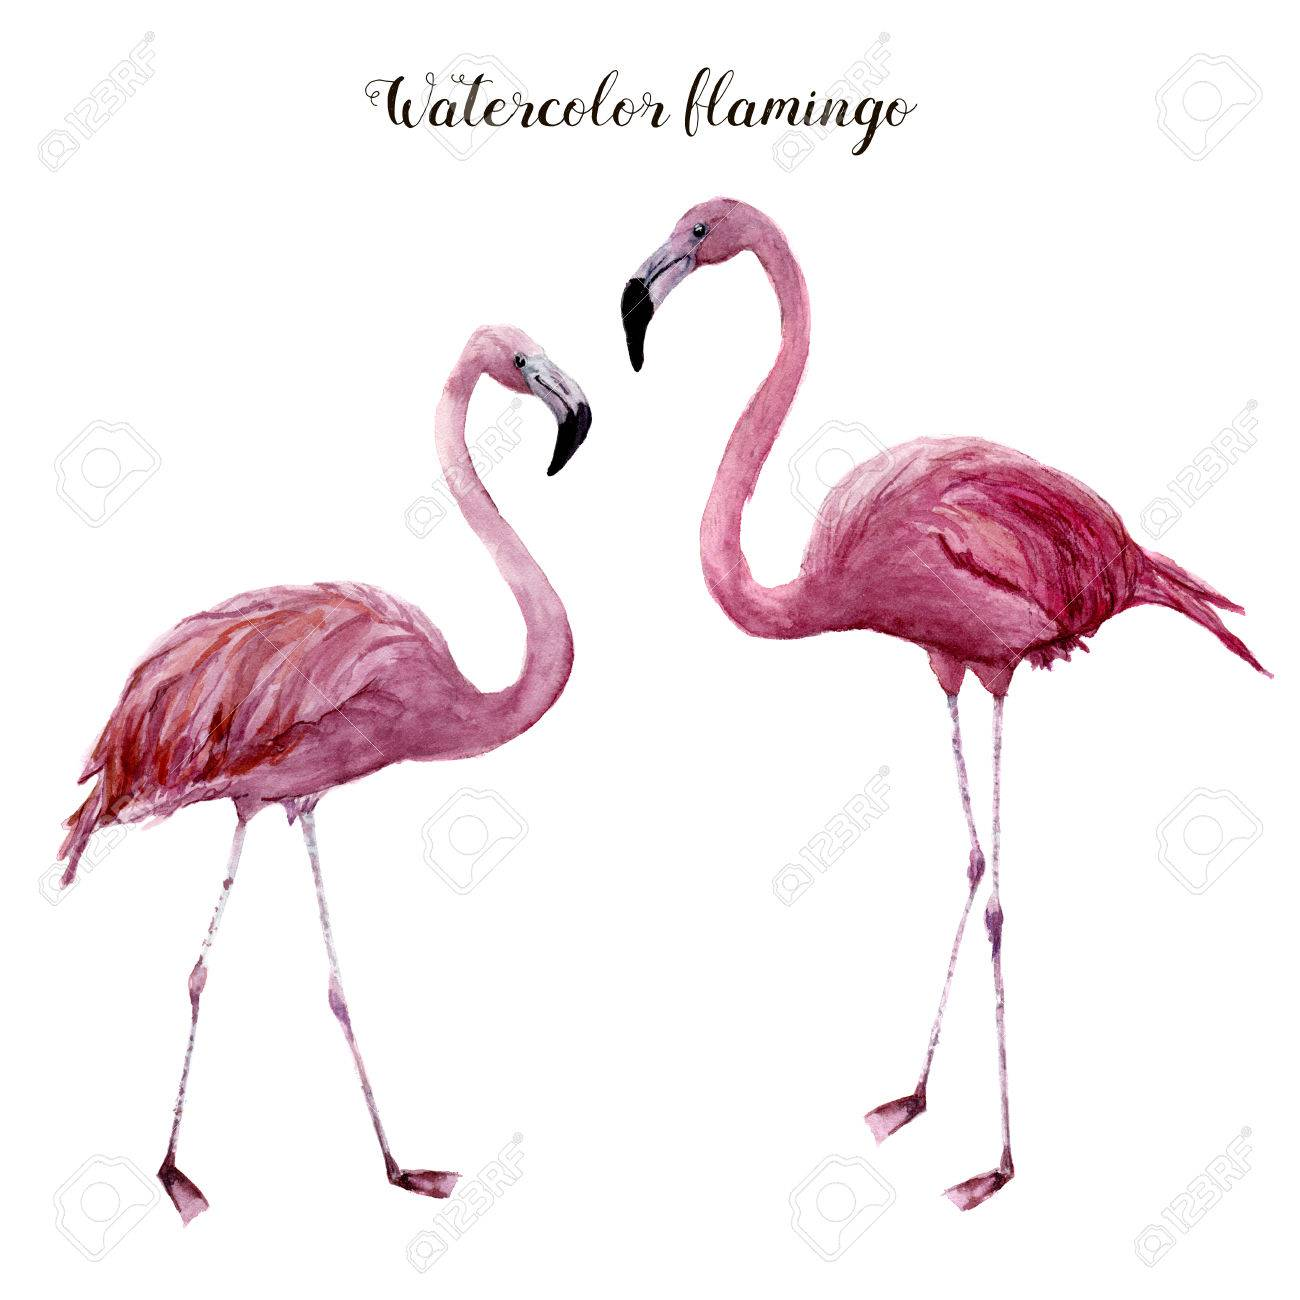 Watercolor flamingo set. Exotic wading bird illustration isolated on white background. Tropical natural illustration. For design, prints or background - 82197563